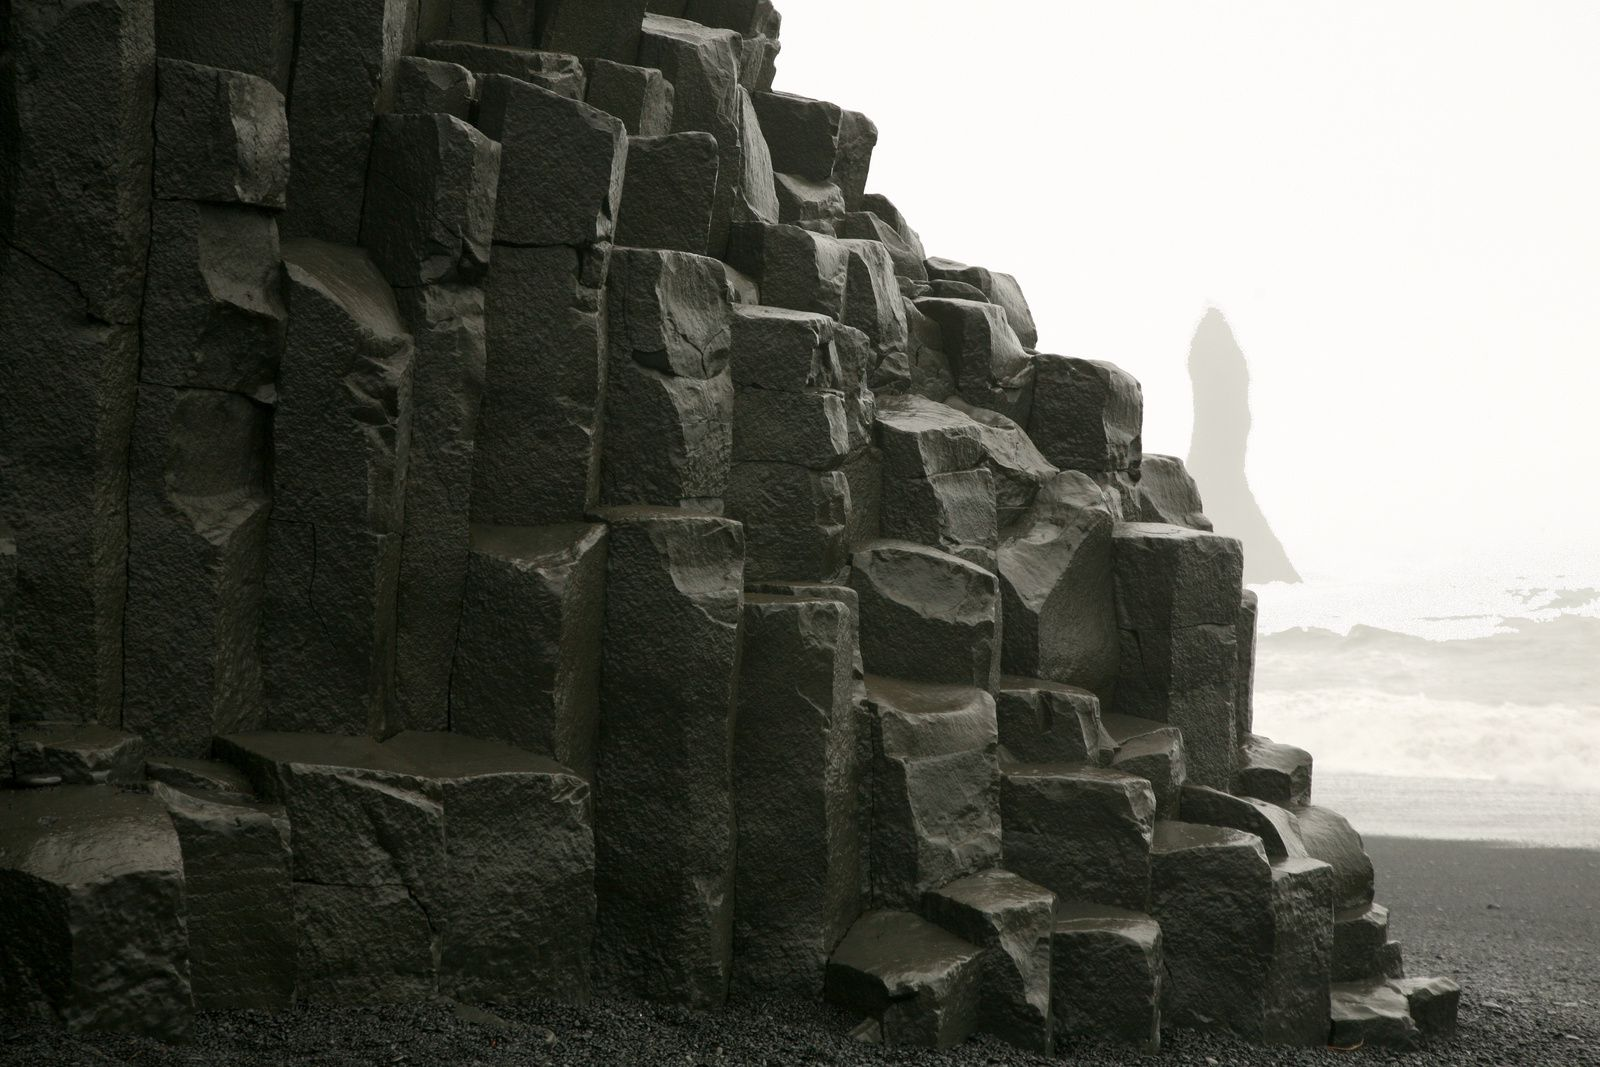 Les orgues de Reynisfjara - photo © Bernard Duyck 2015